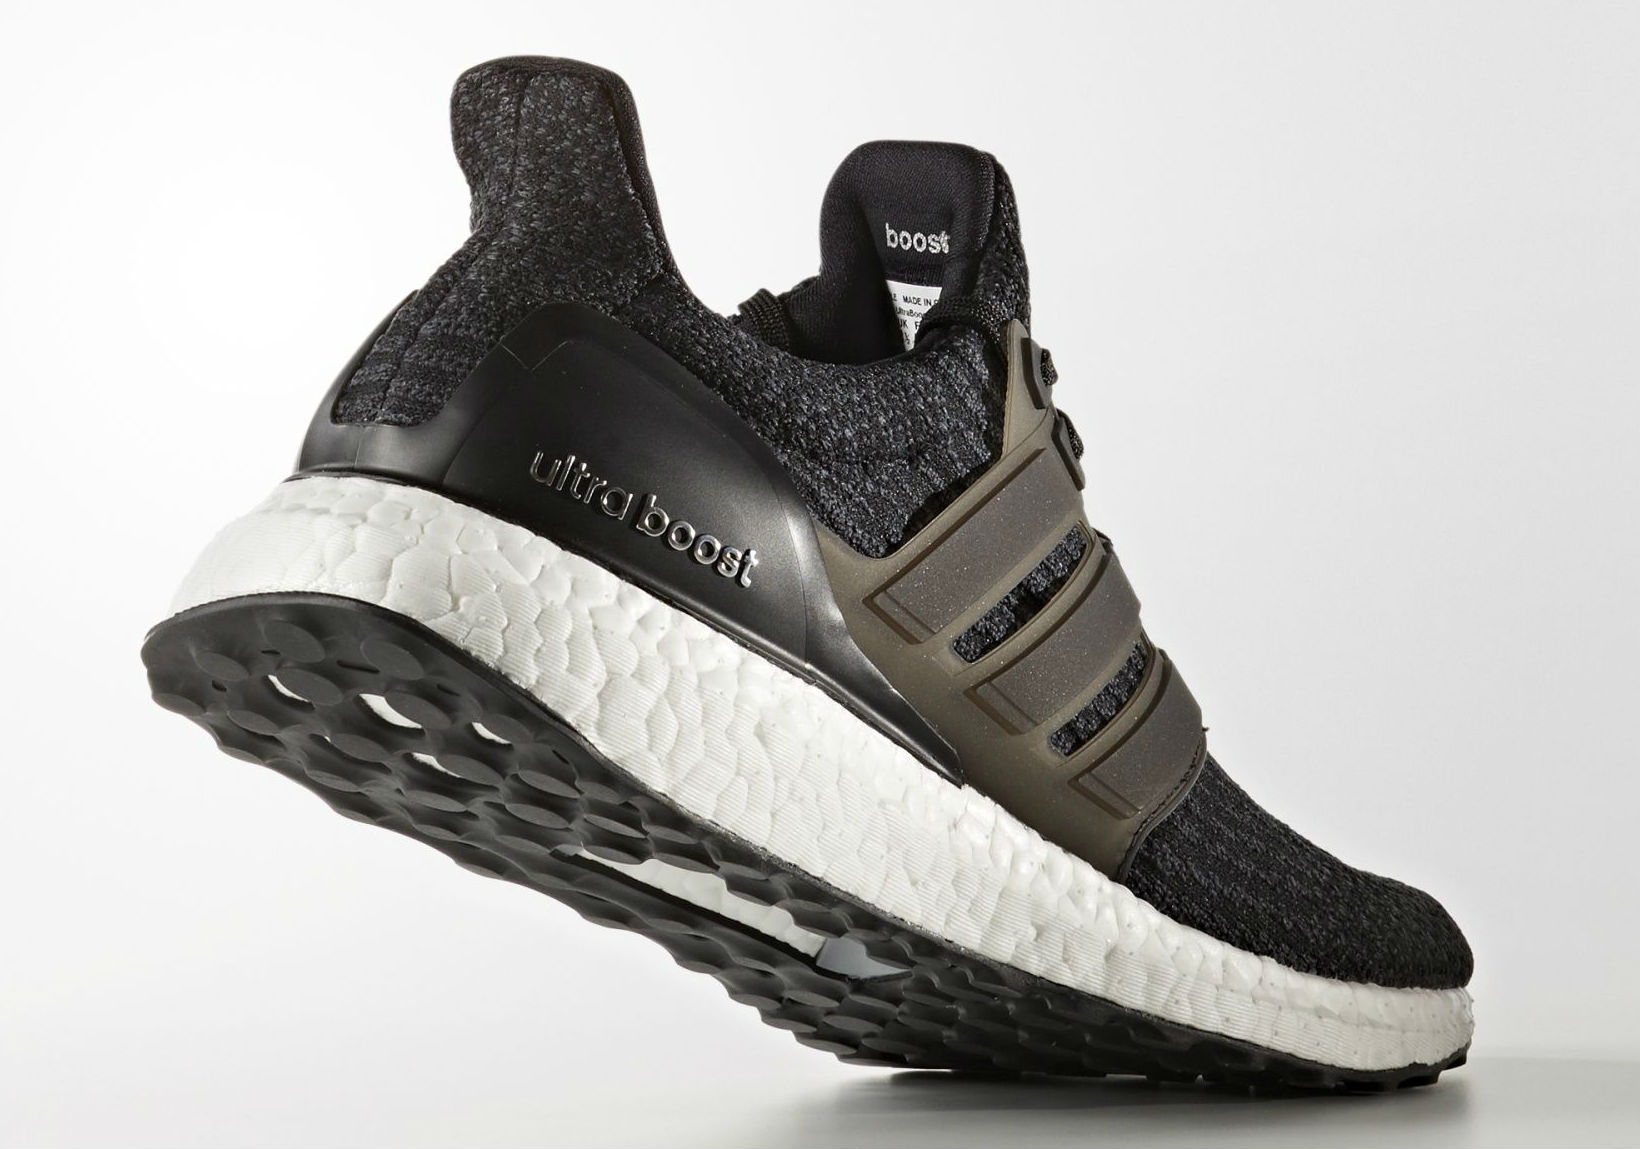 cacbc464e511e adidas Ultra Boost 2017 Black Heel BA8842. adidas Ultra Boost 2017 Black  Women s Side S80682